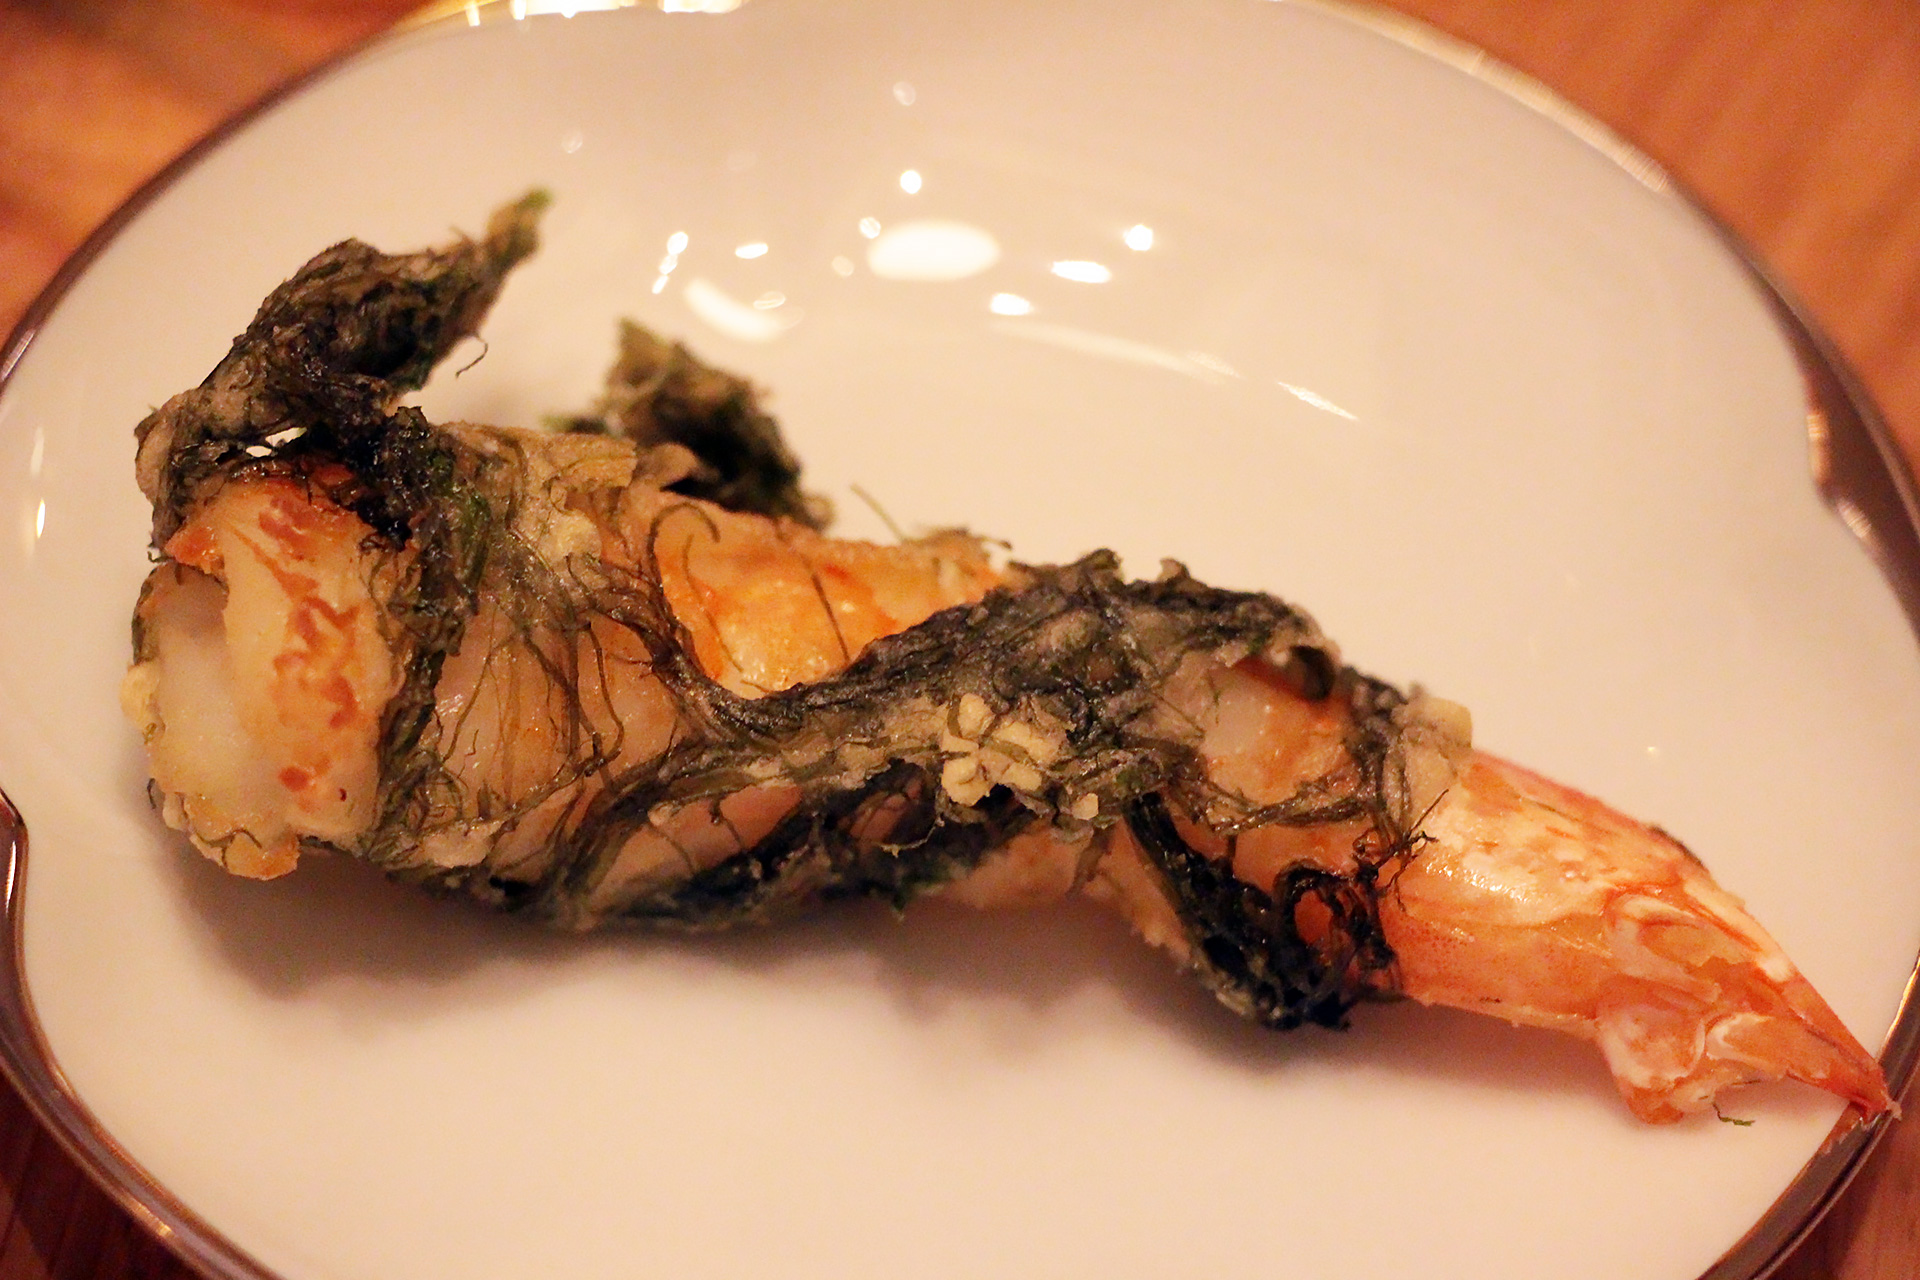 Fried shrimp wrapped in sea grass.